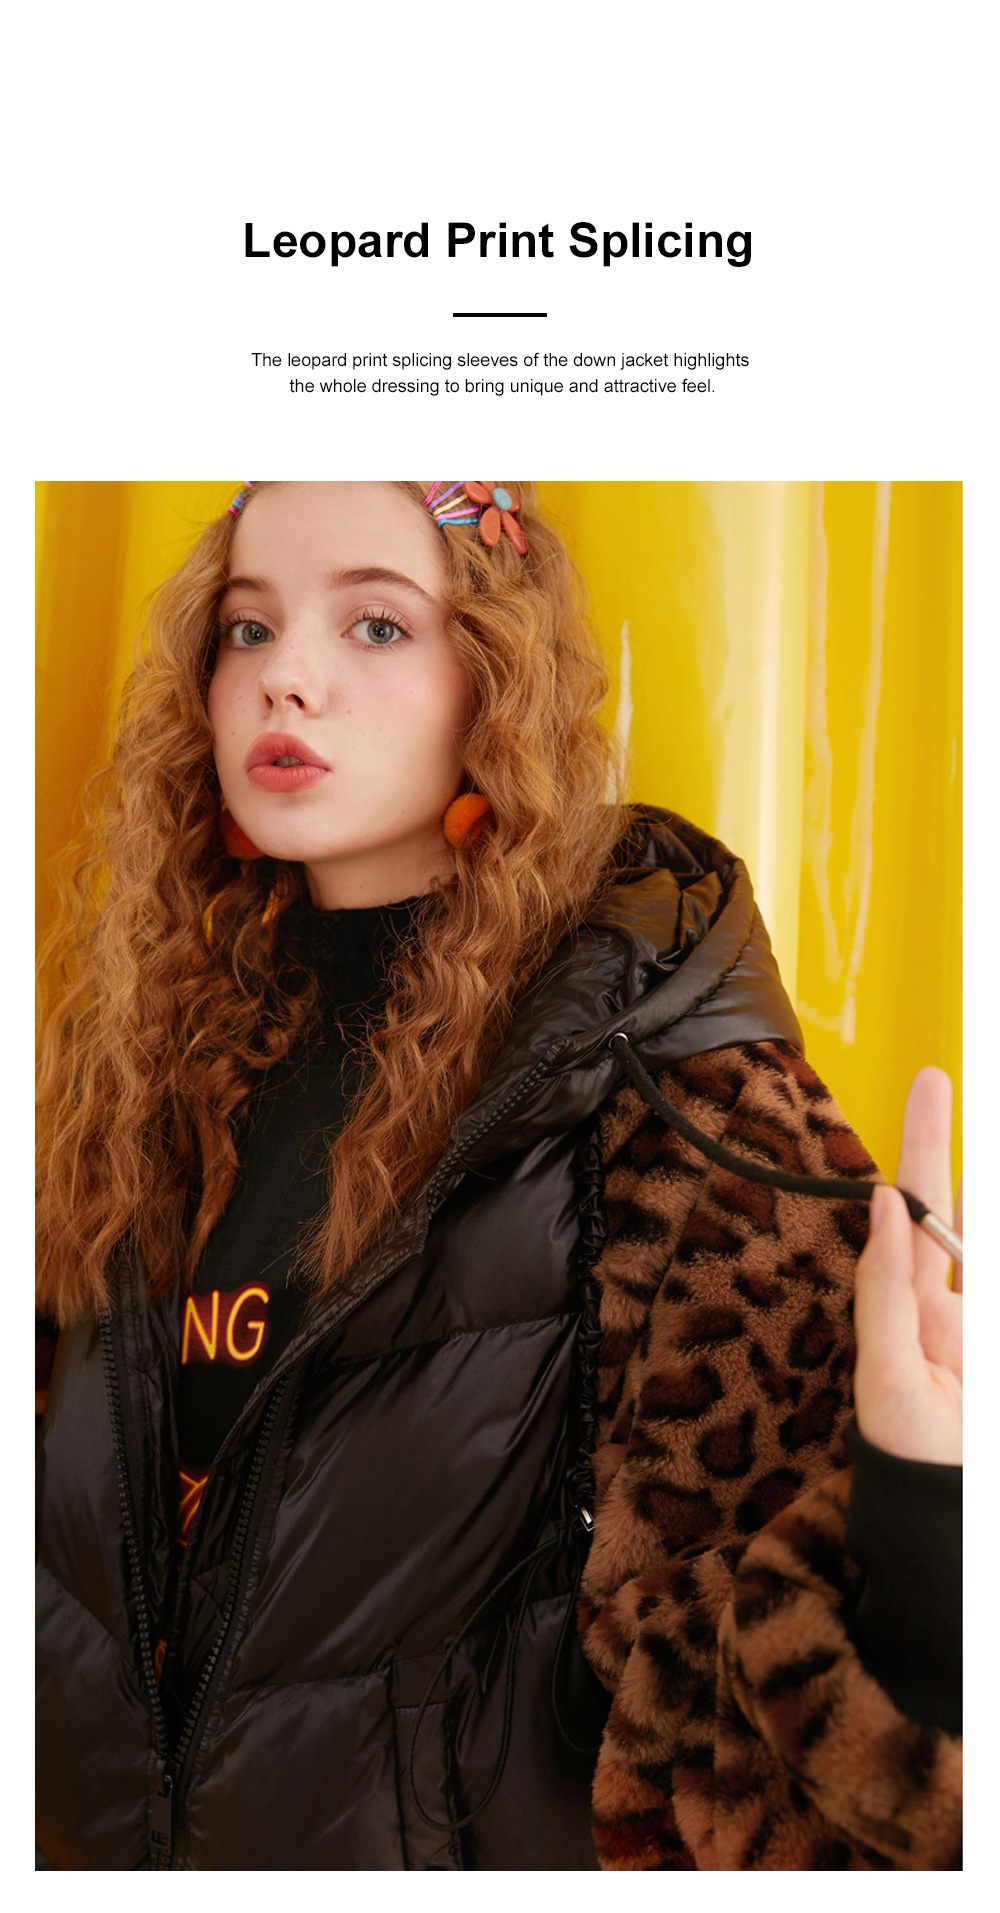 ELF SACK Classic Leopard Print Down Jacket for Women Winter Wear Thickened Splicing Hoody Down Coat Thermal Down Jacket 1